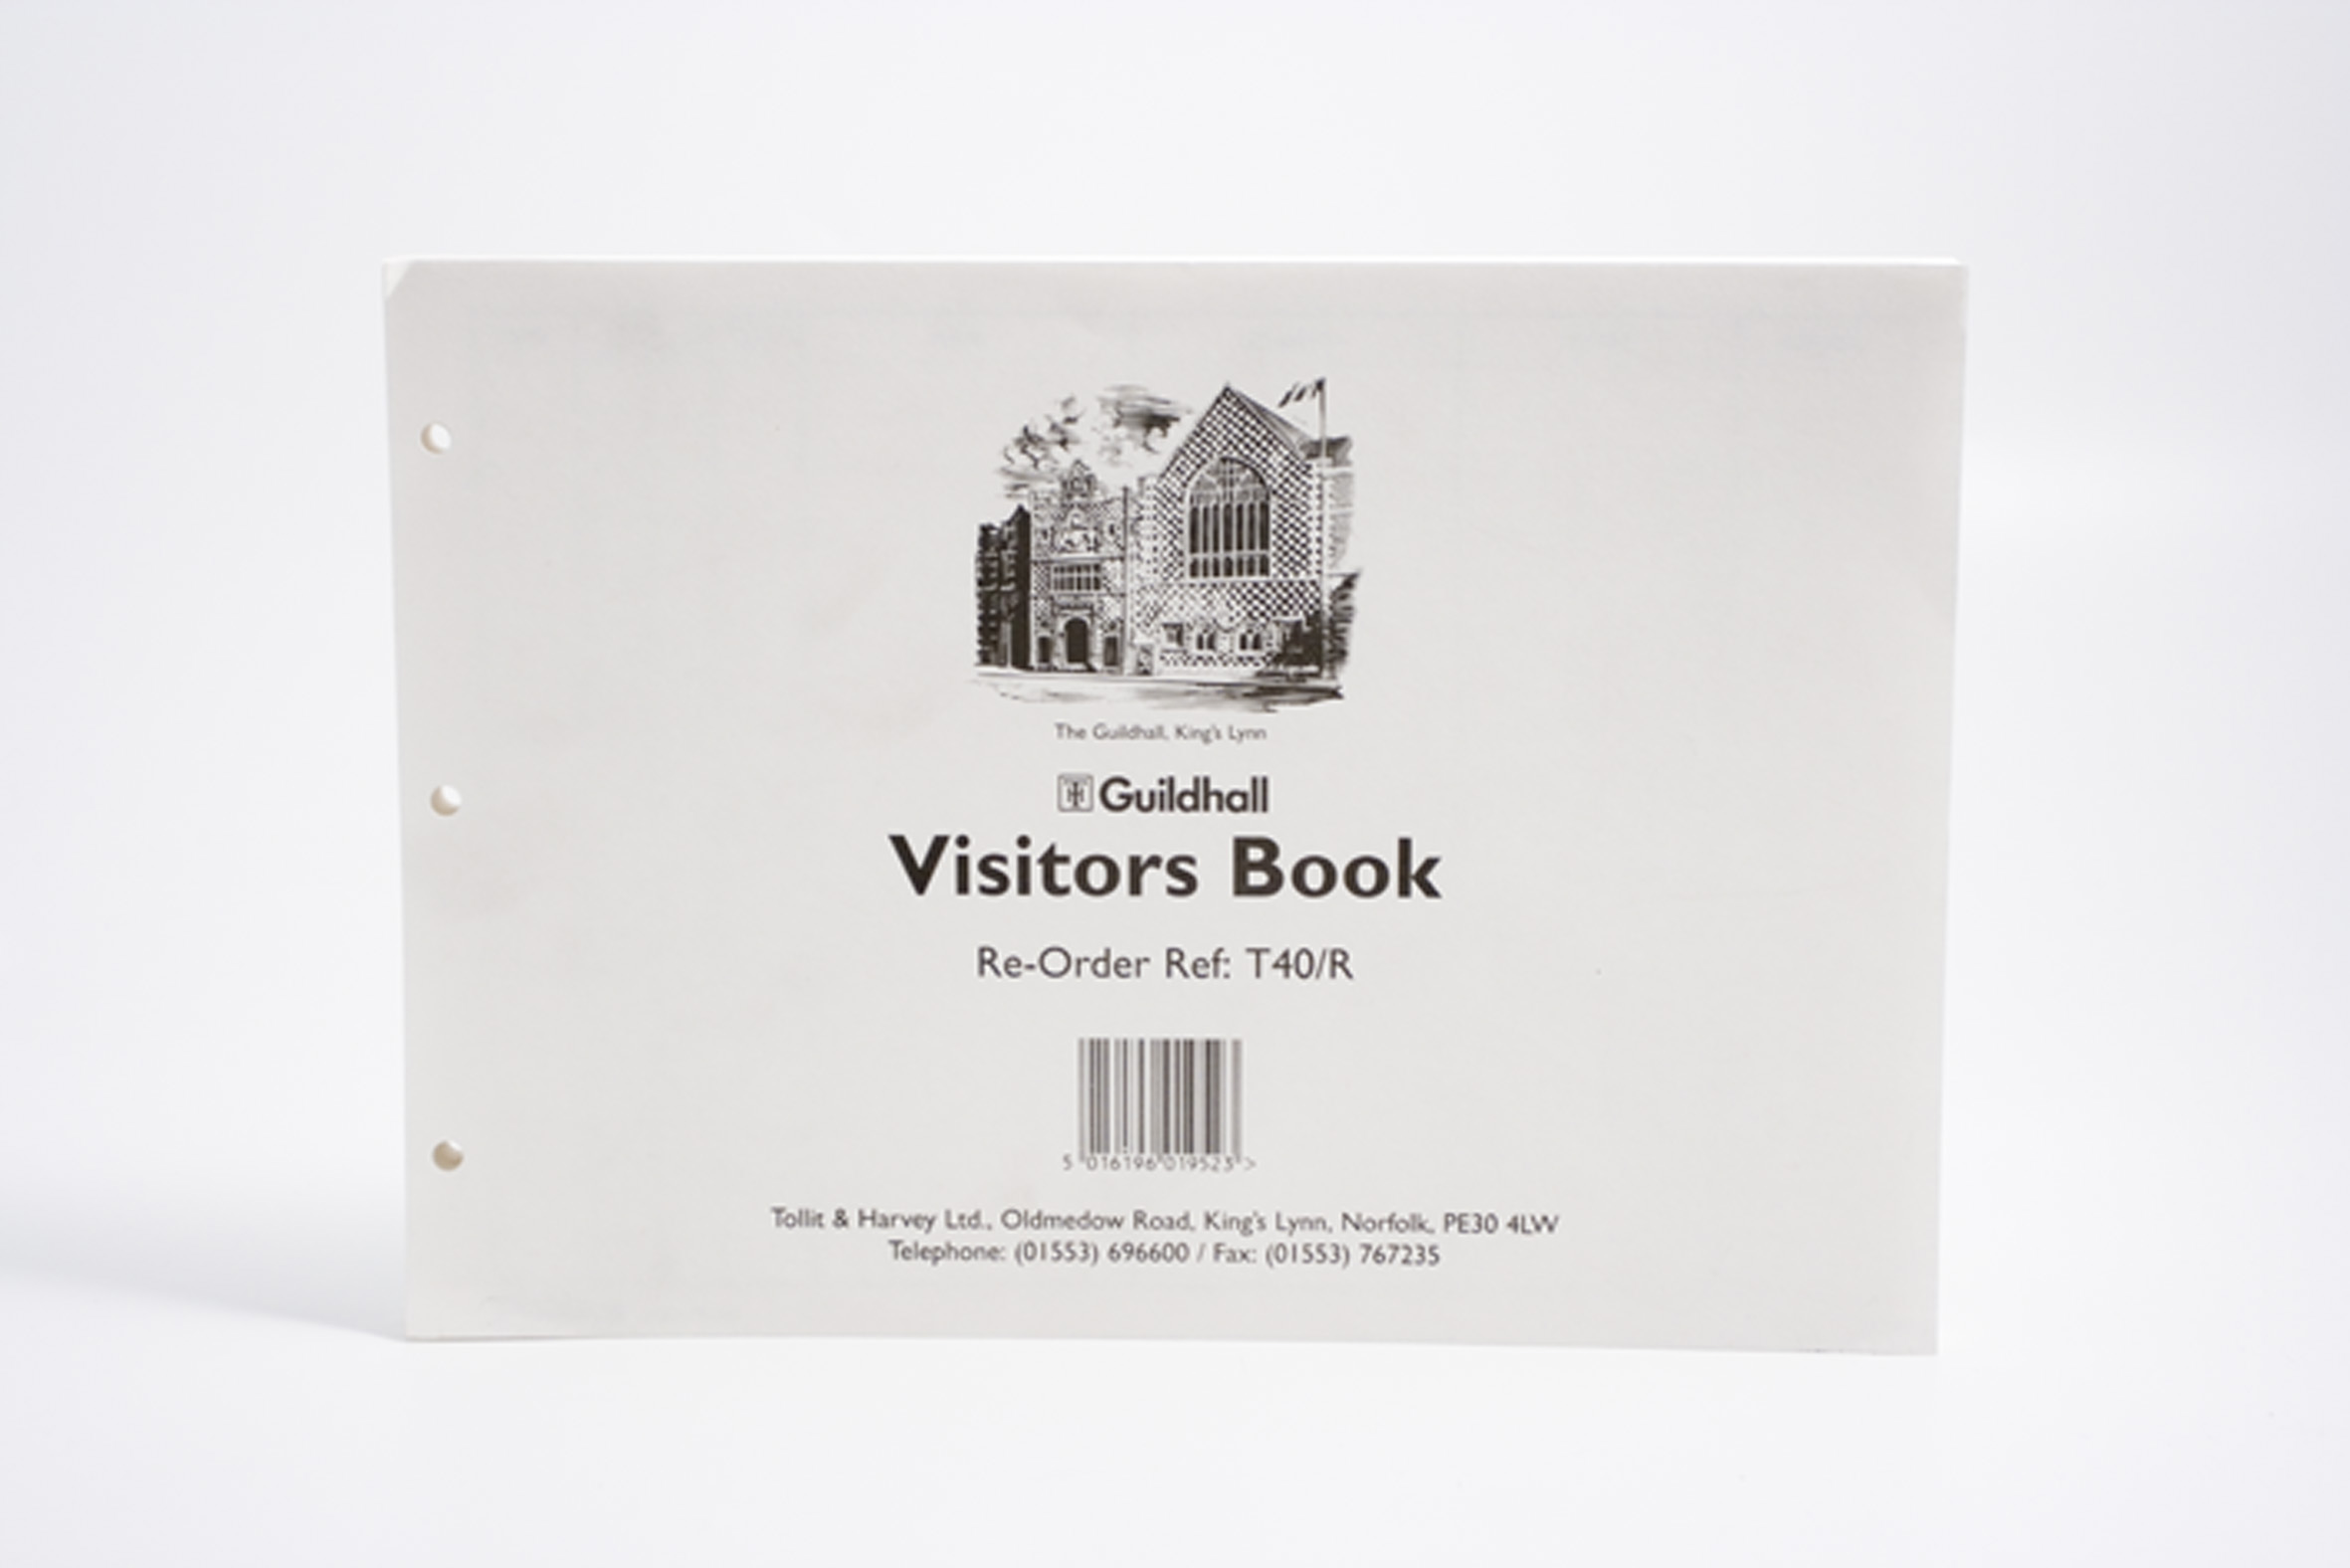 Visitors Books